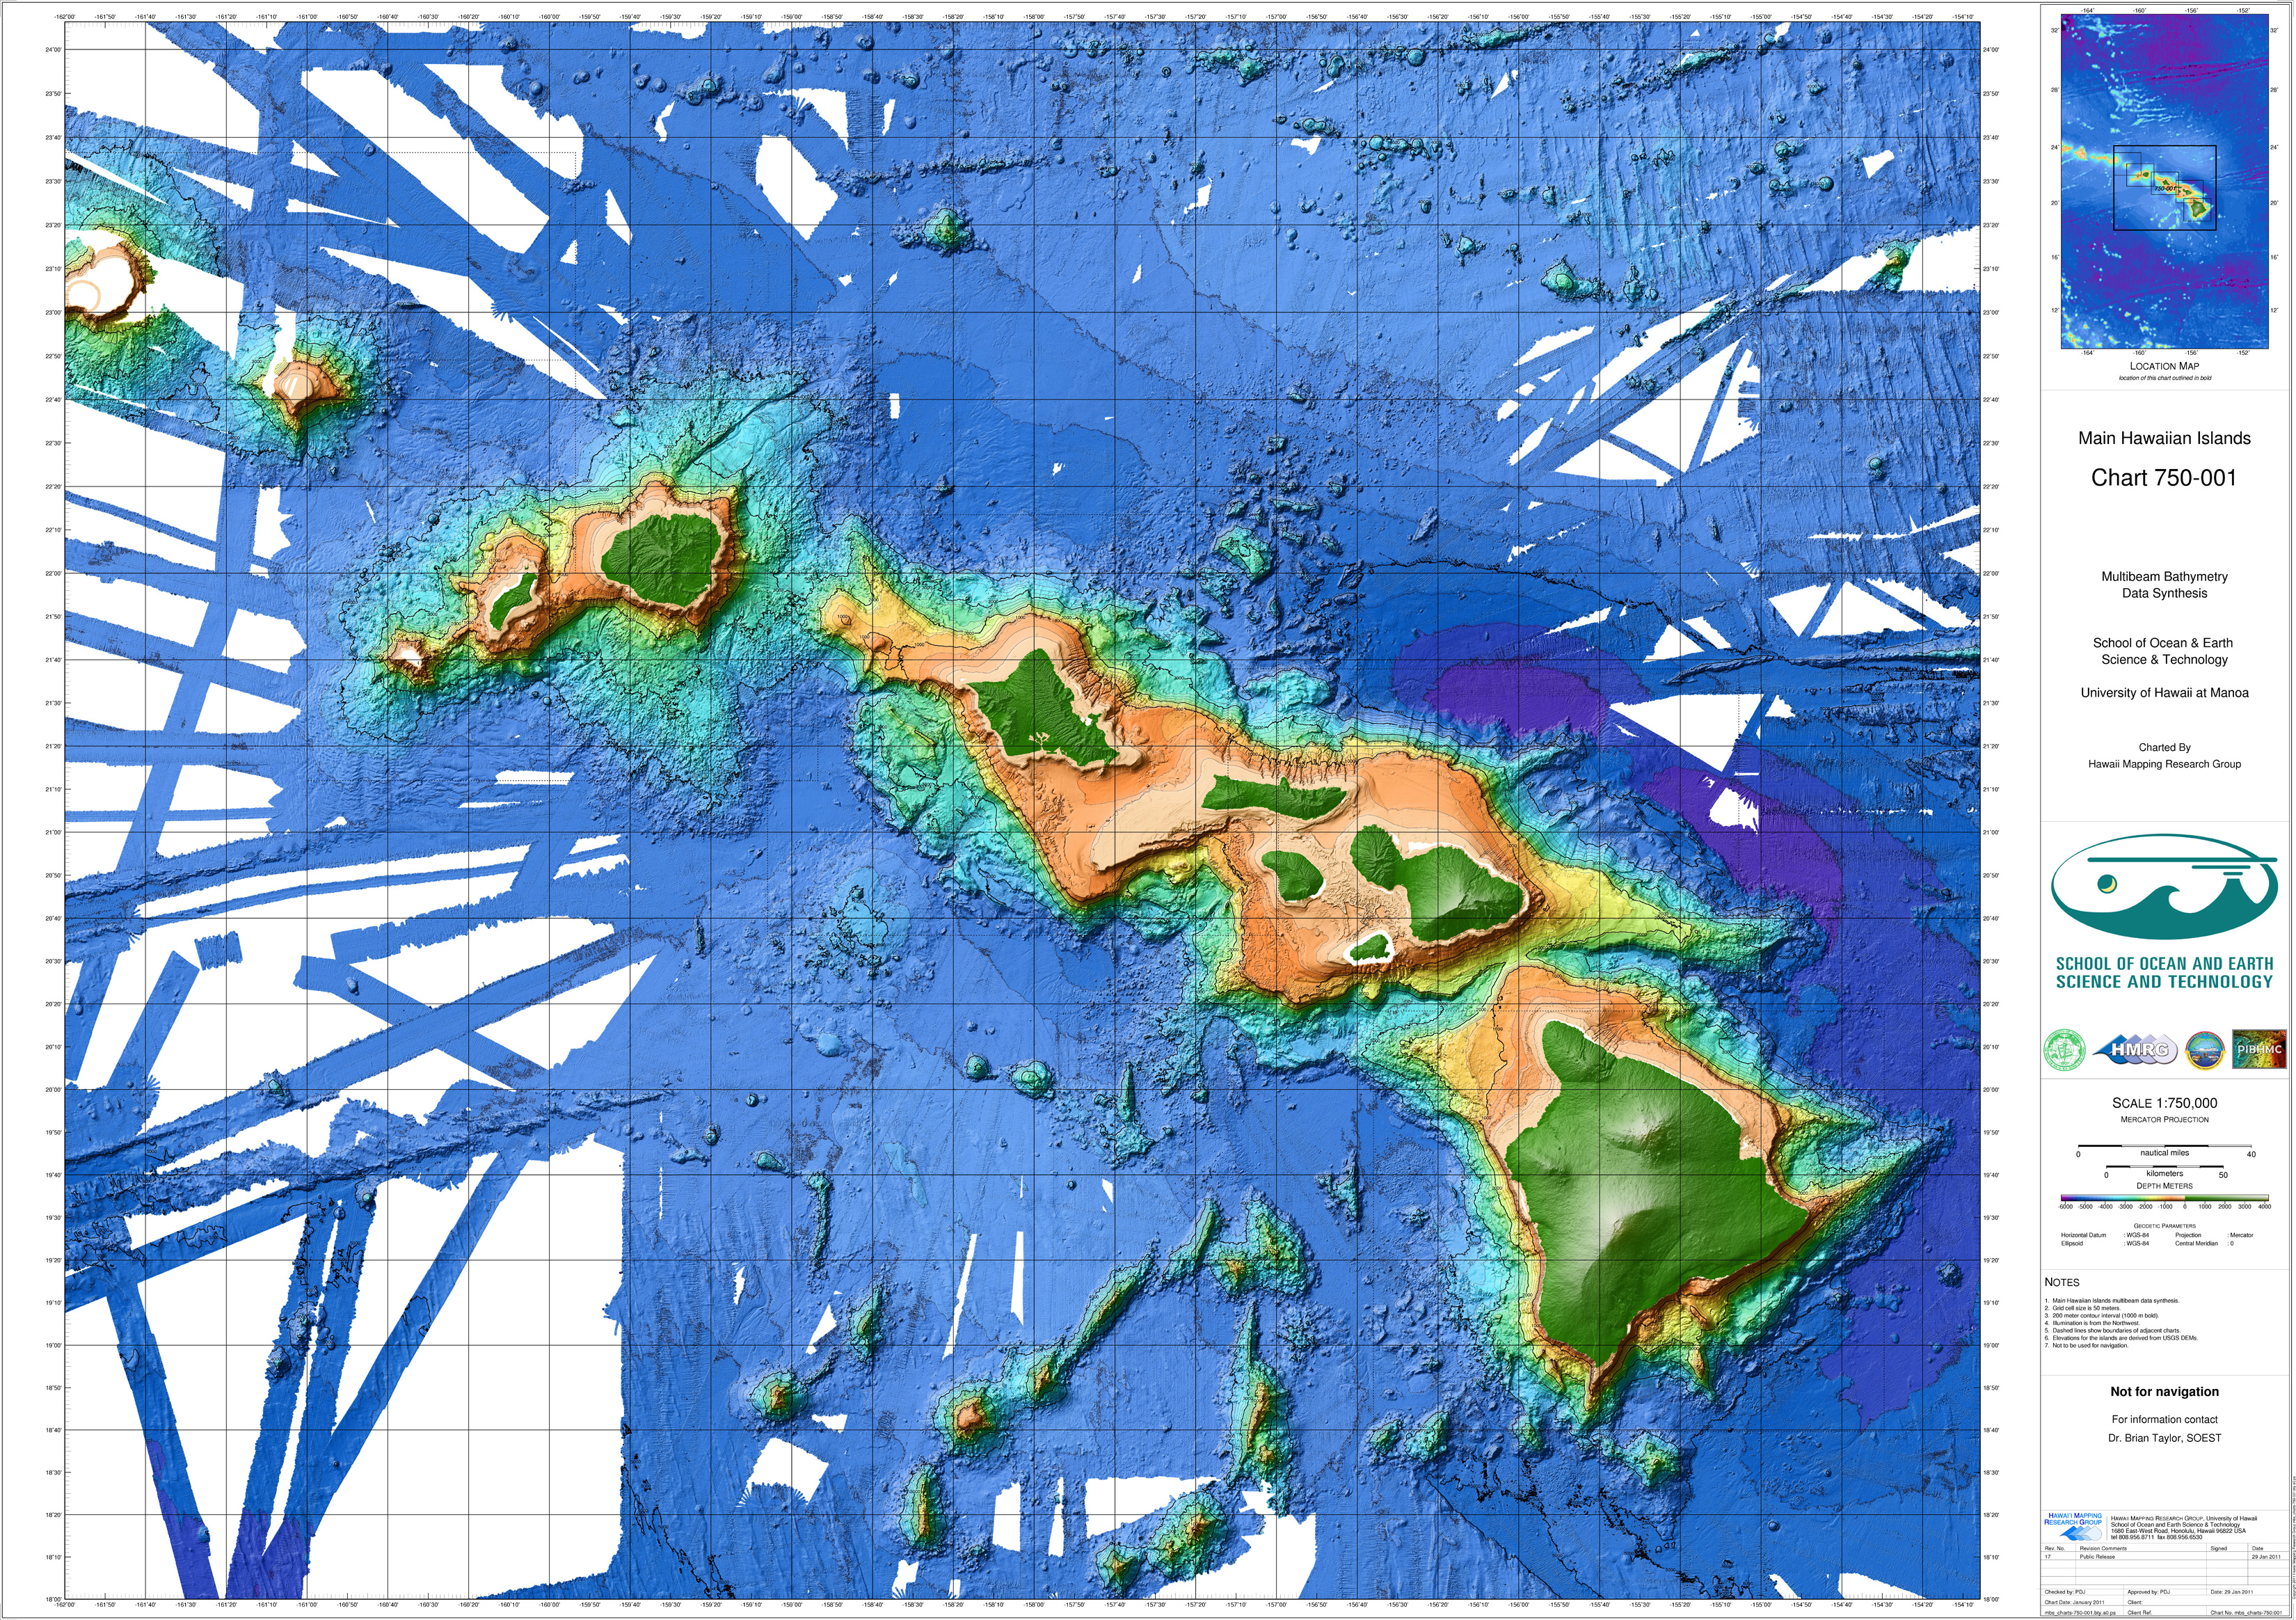 Main Hawaiian Islands Multibeam Synthesis